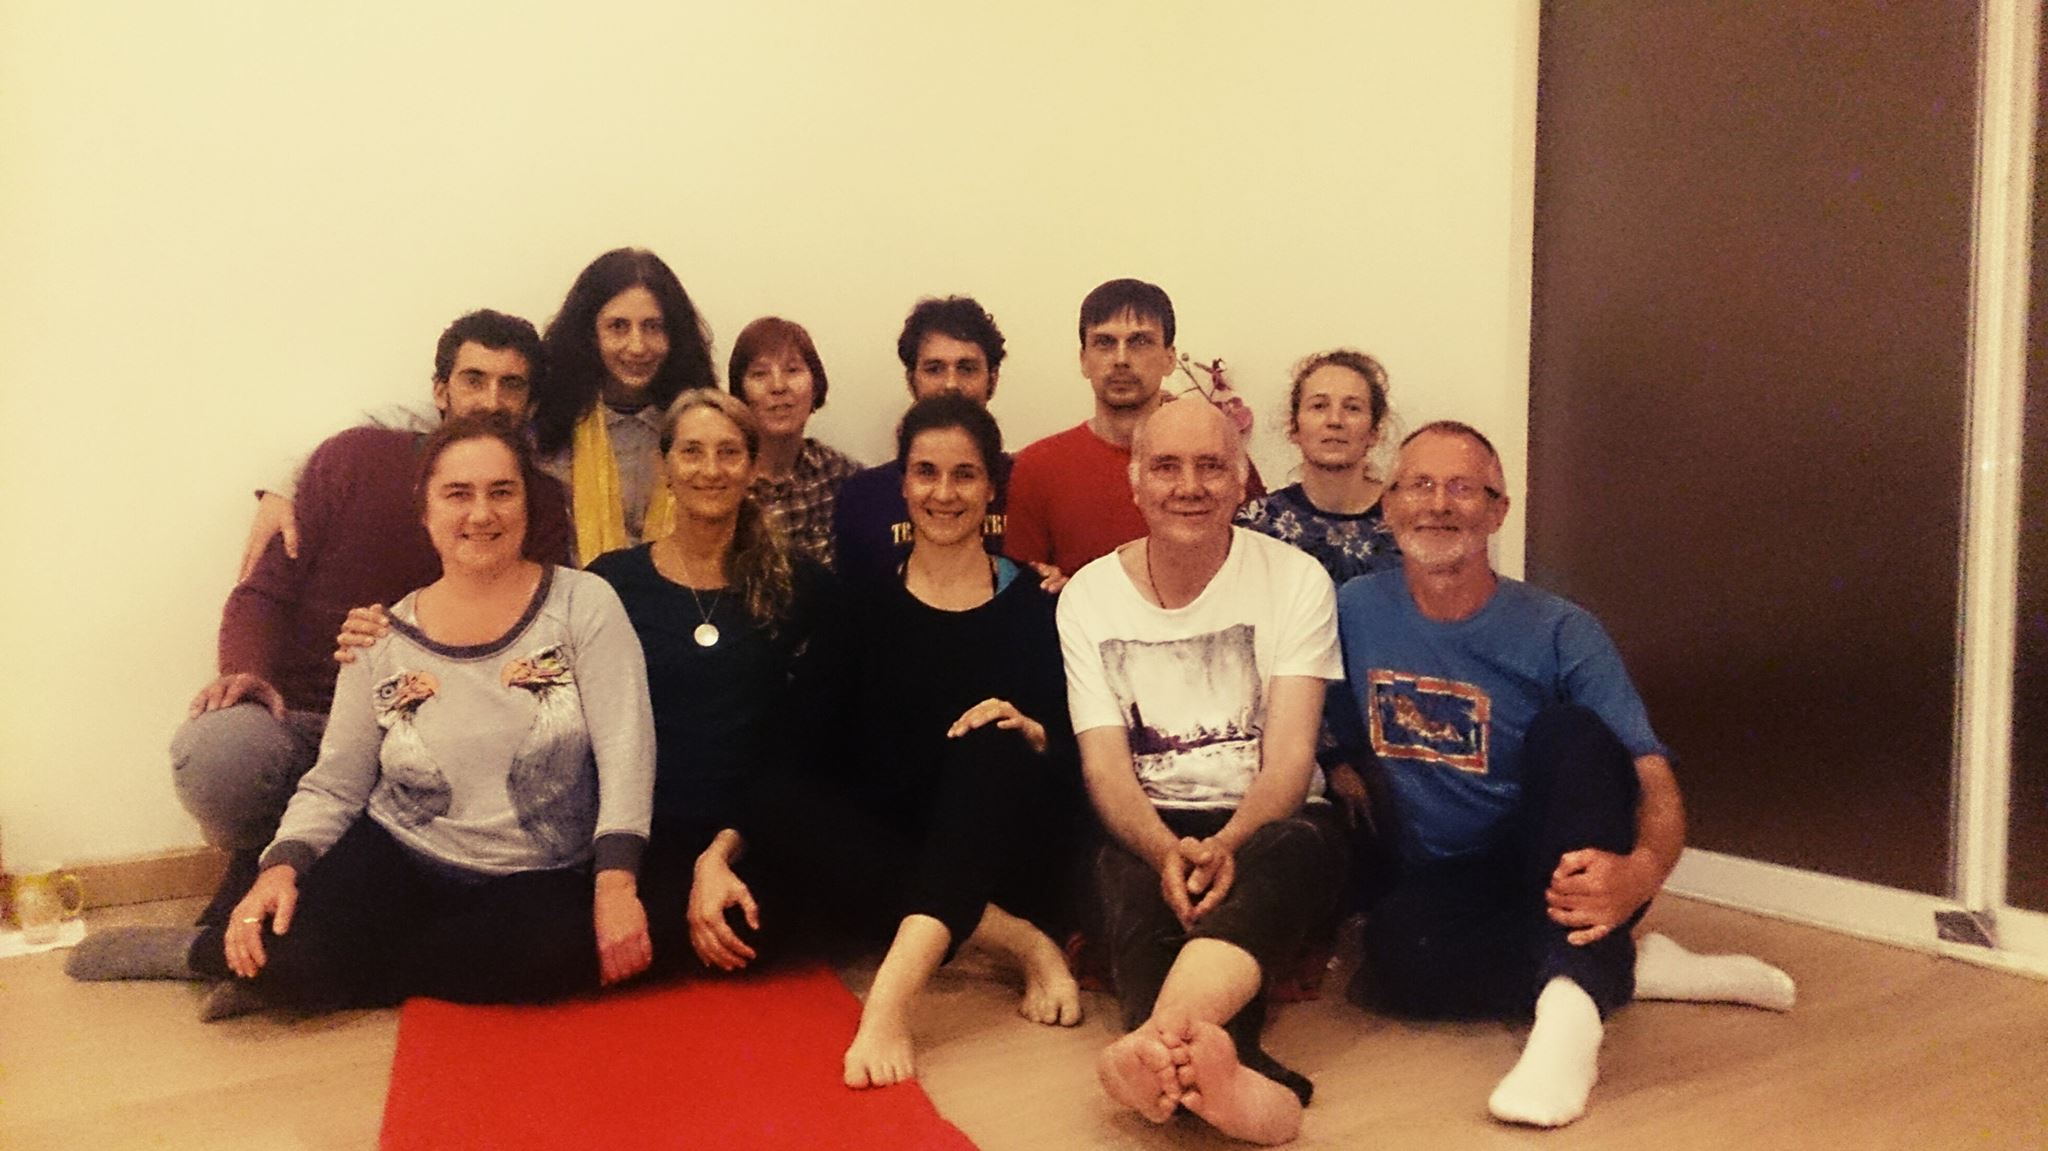 2nd Level of Yantra Yoga supervision of the 3rd series with Raquel Diaz by Laura Evangelisti in Madrid, April 8-10, 2016.